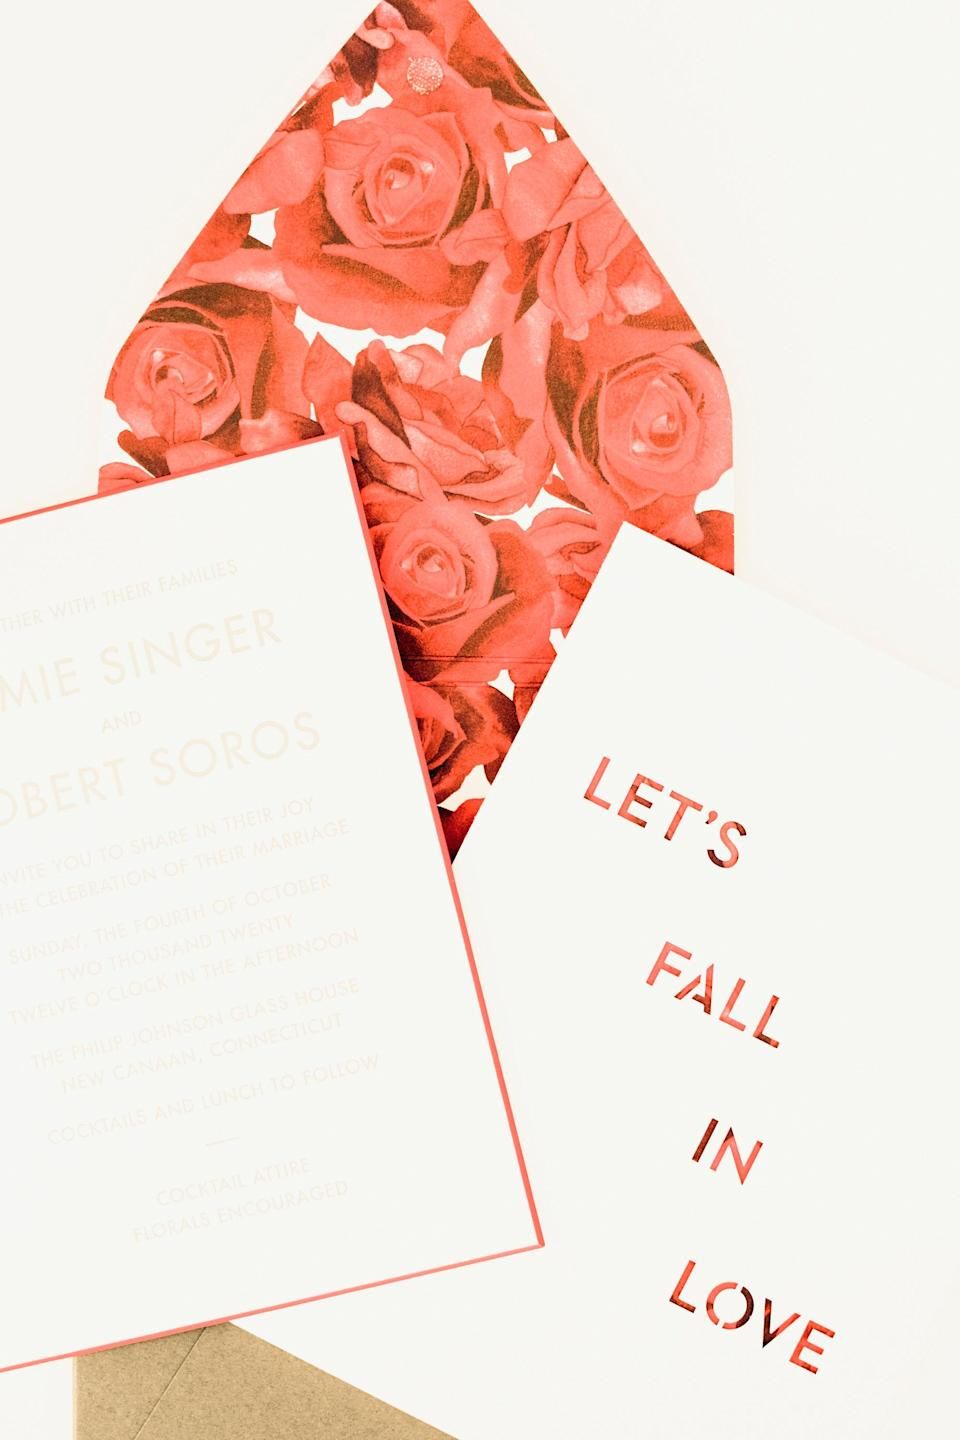 Our invitation design was inspired by artist Lawrence Weiner and beautifully executed by Ceci New York.